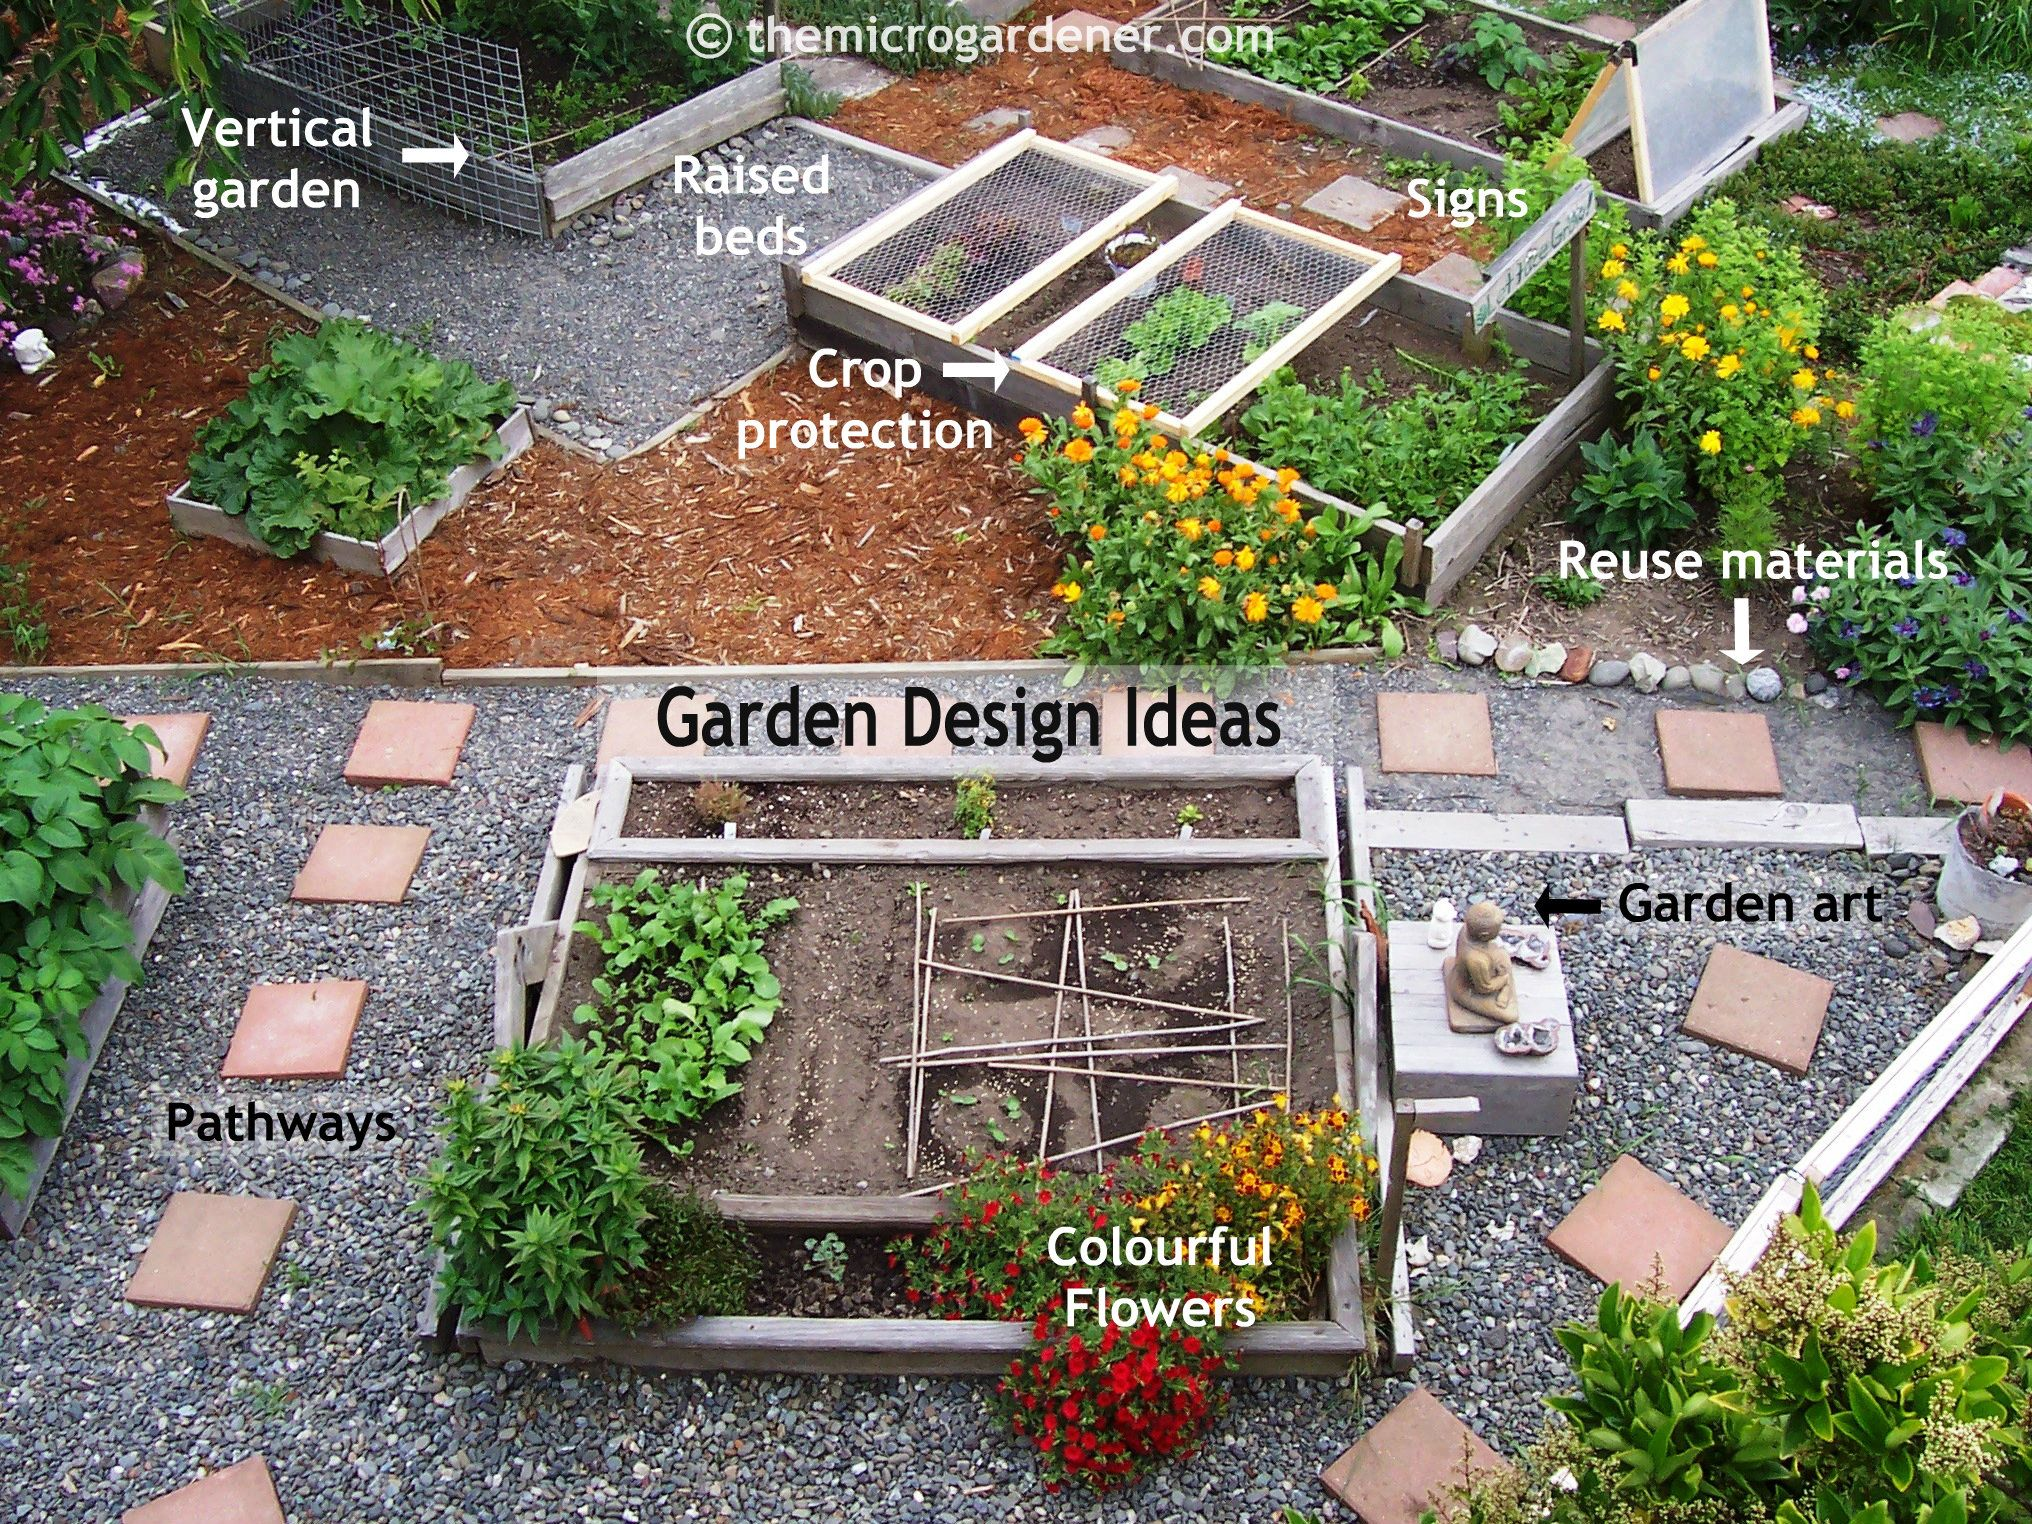 Small garden design ideas on pinterest vertical gardens for Garden layout ideas small garden